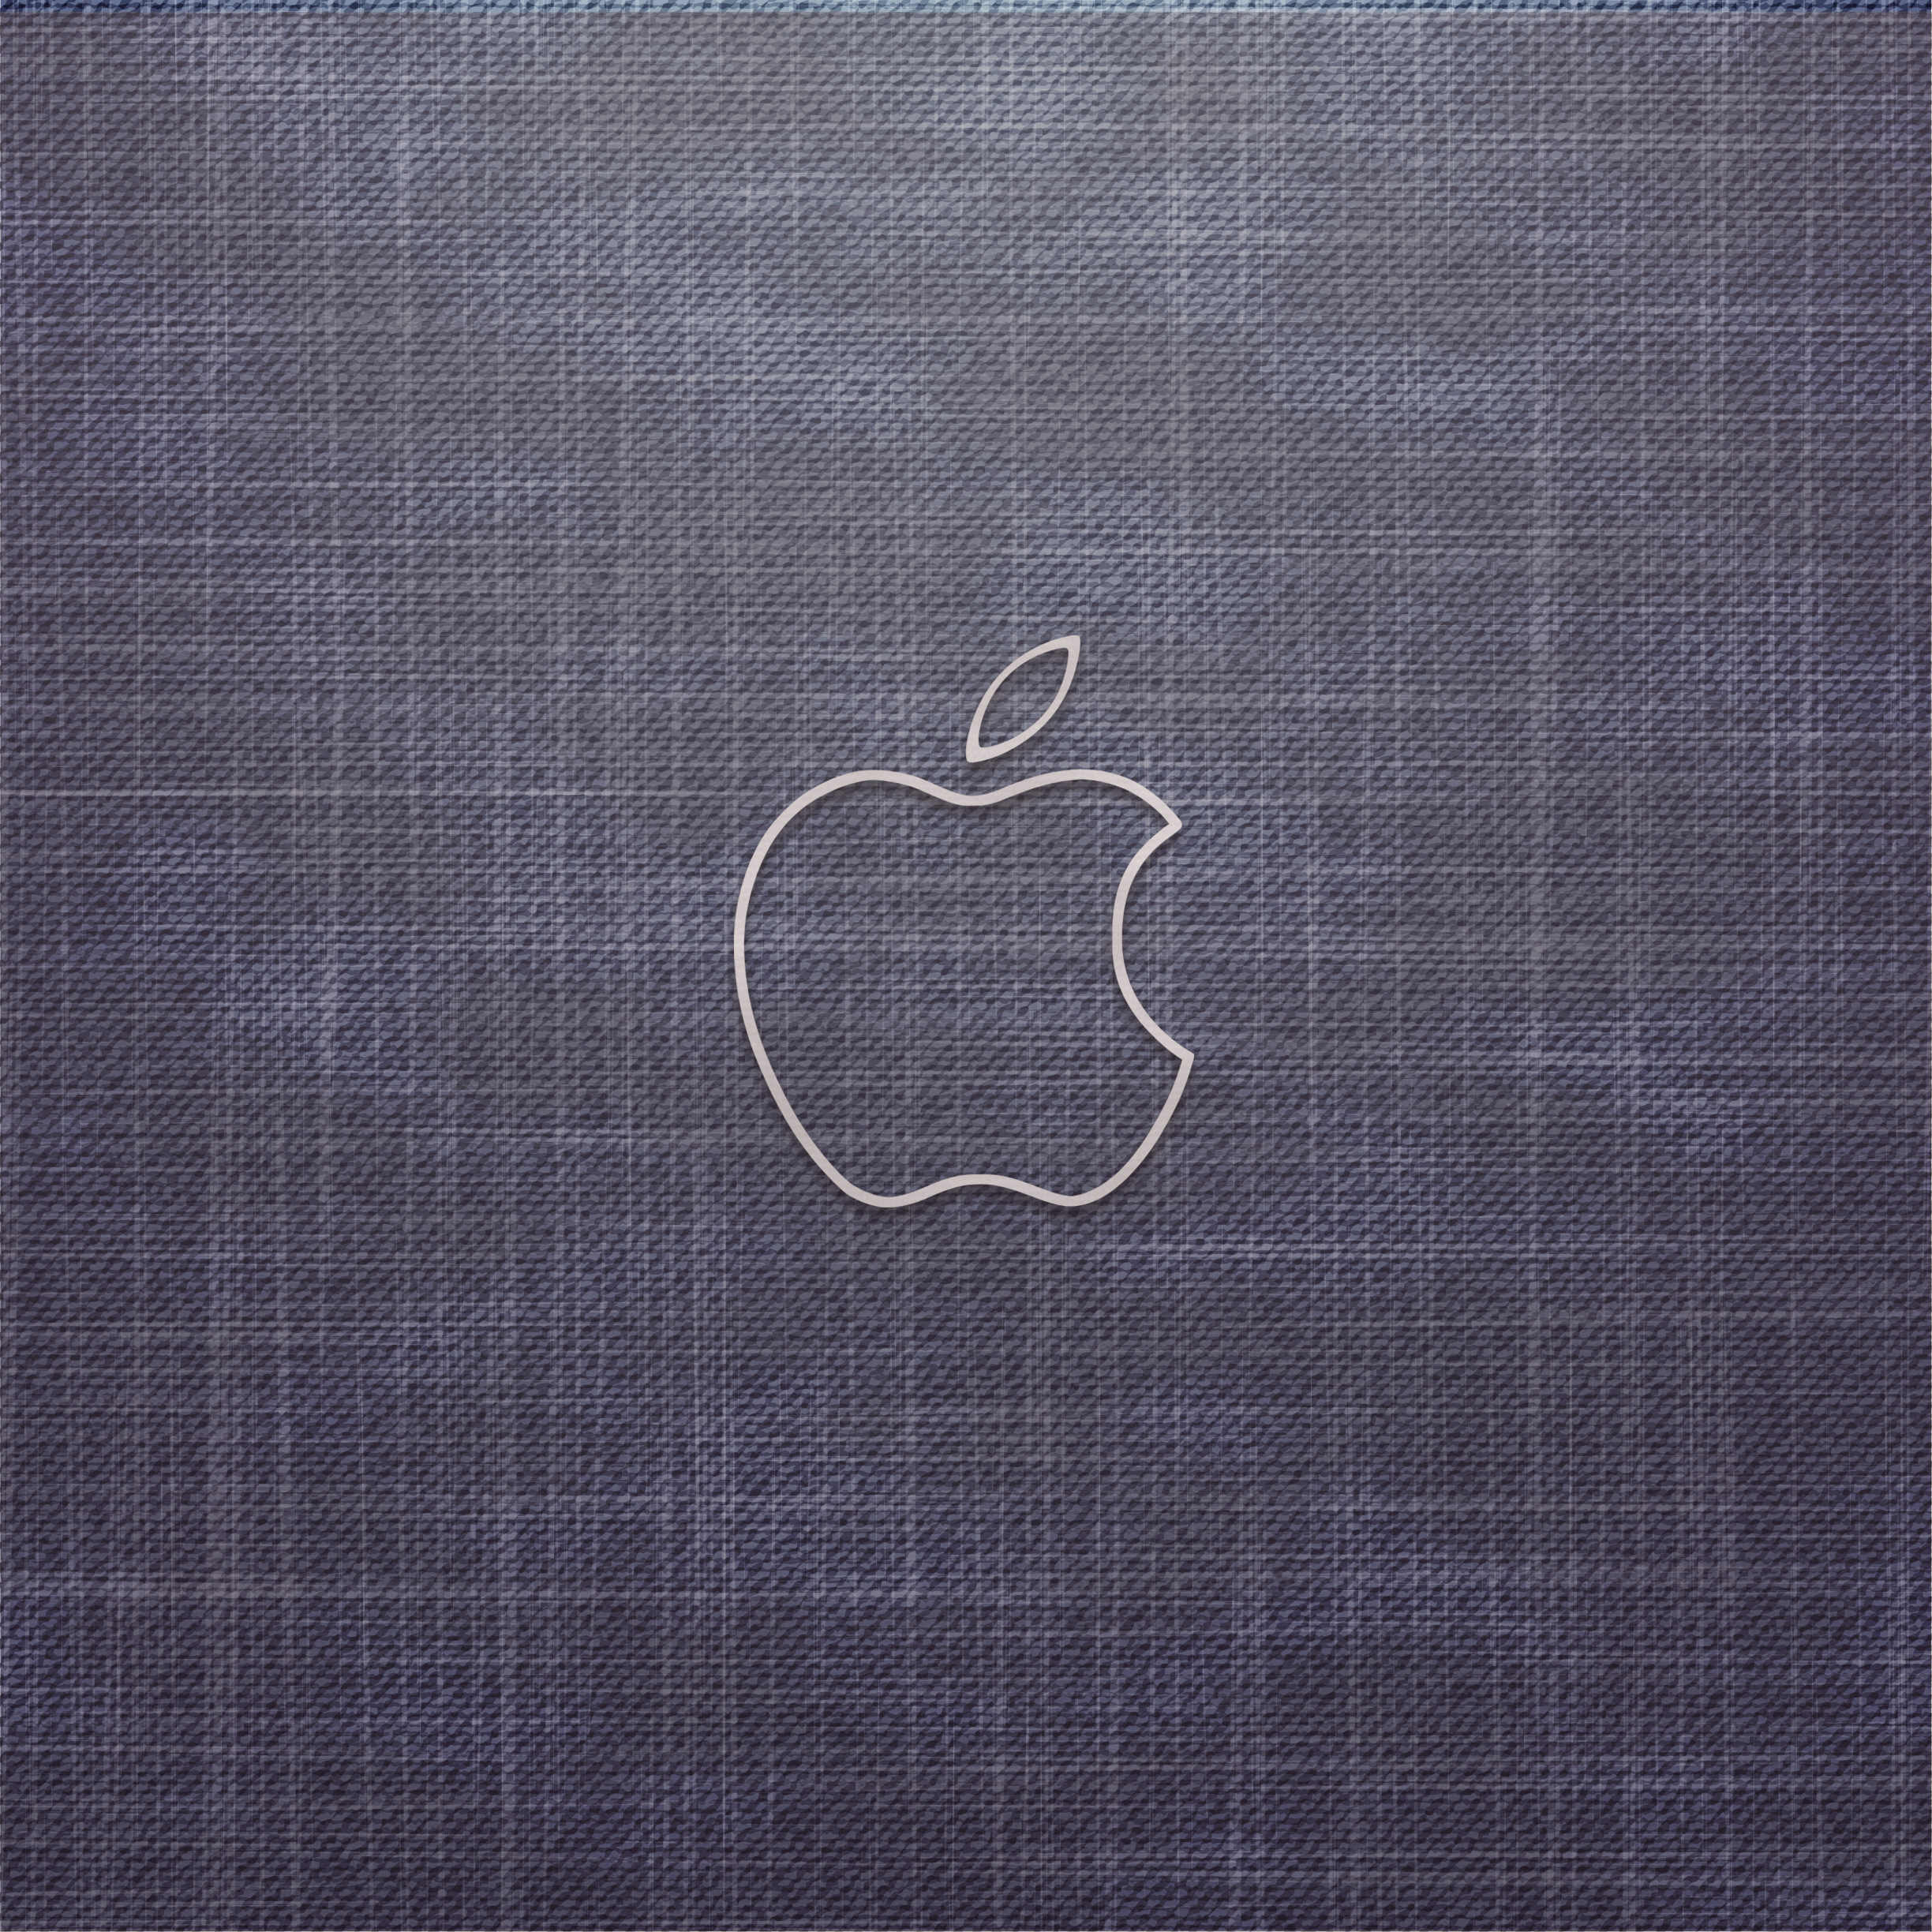 iPhone iPad MacBook Air MacBook Pro iMac Apple Logo Wallpaper ヴィンテージデニム